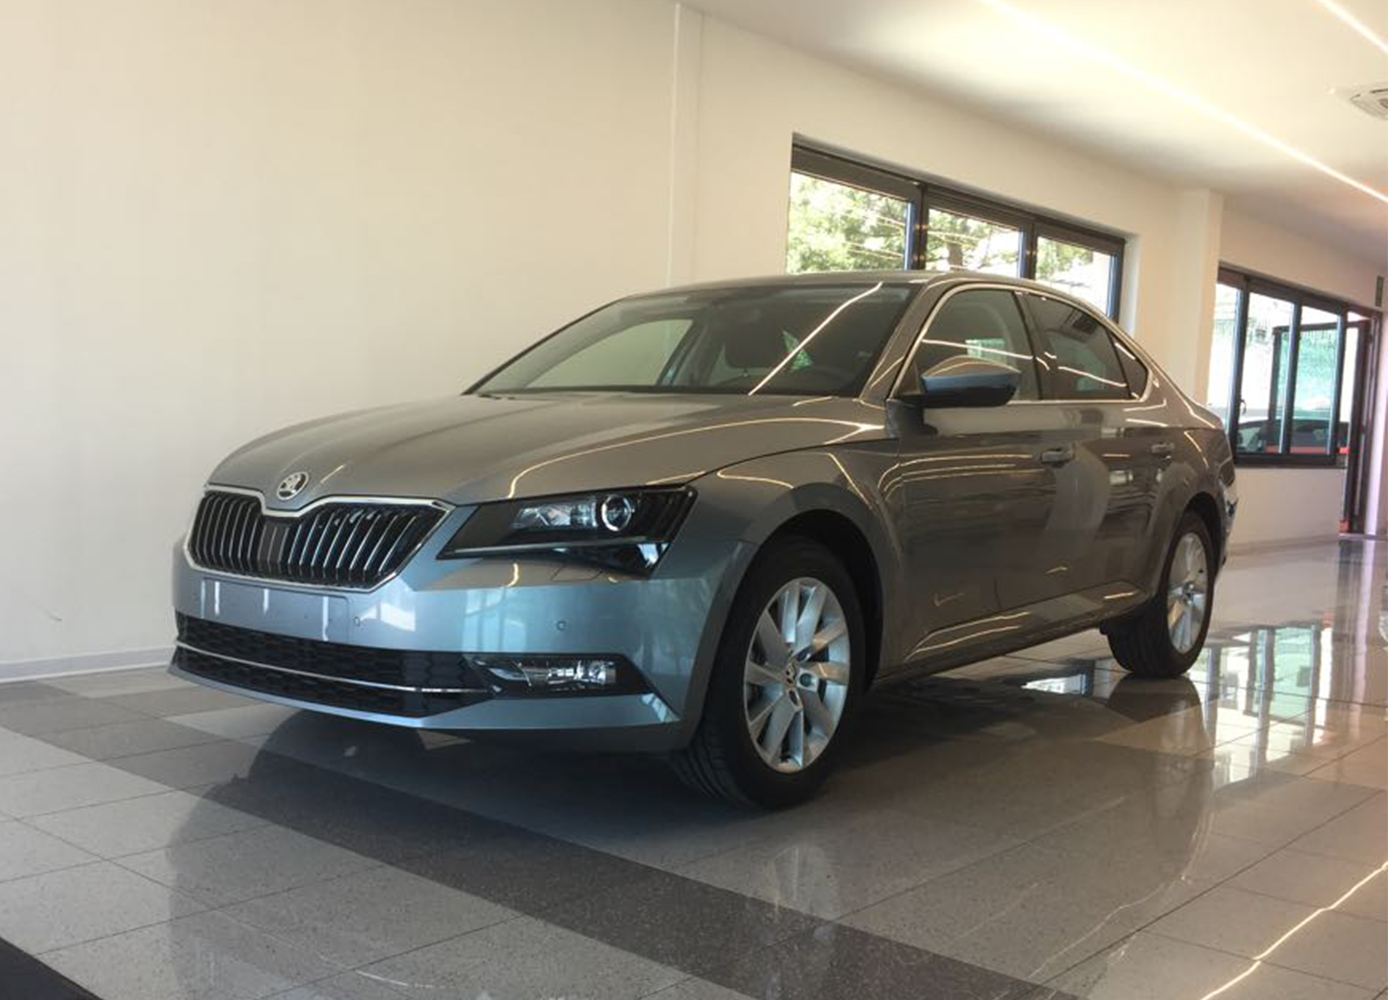 skoda superb 2 0 tdi dsg ambition grigio business nuova a soli 30330 su miacar 4mw2t. Black Bedroom Furniture Sets. Home Design Ideas